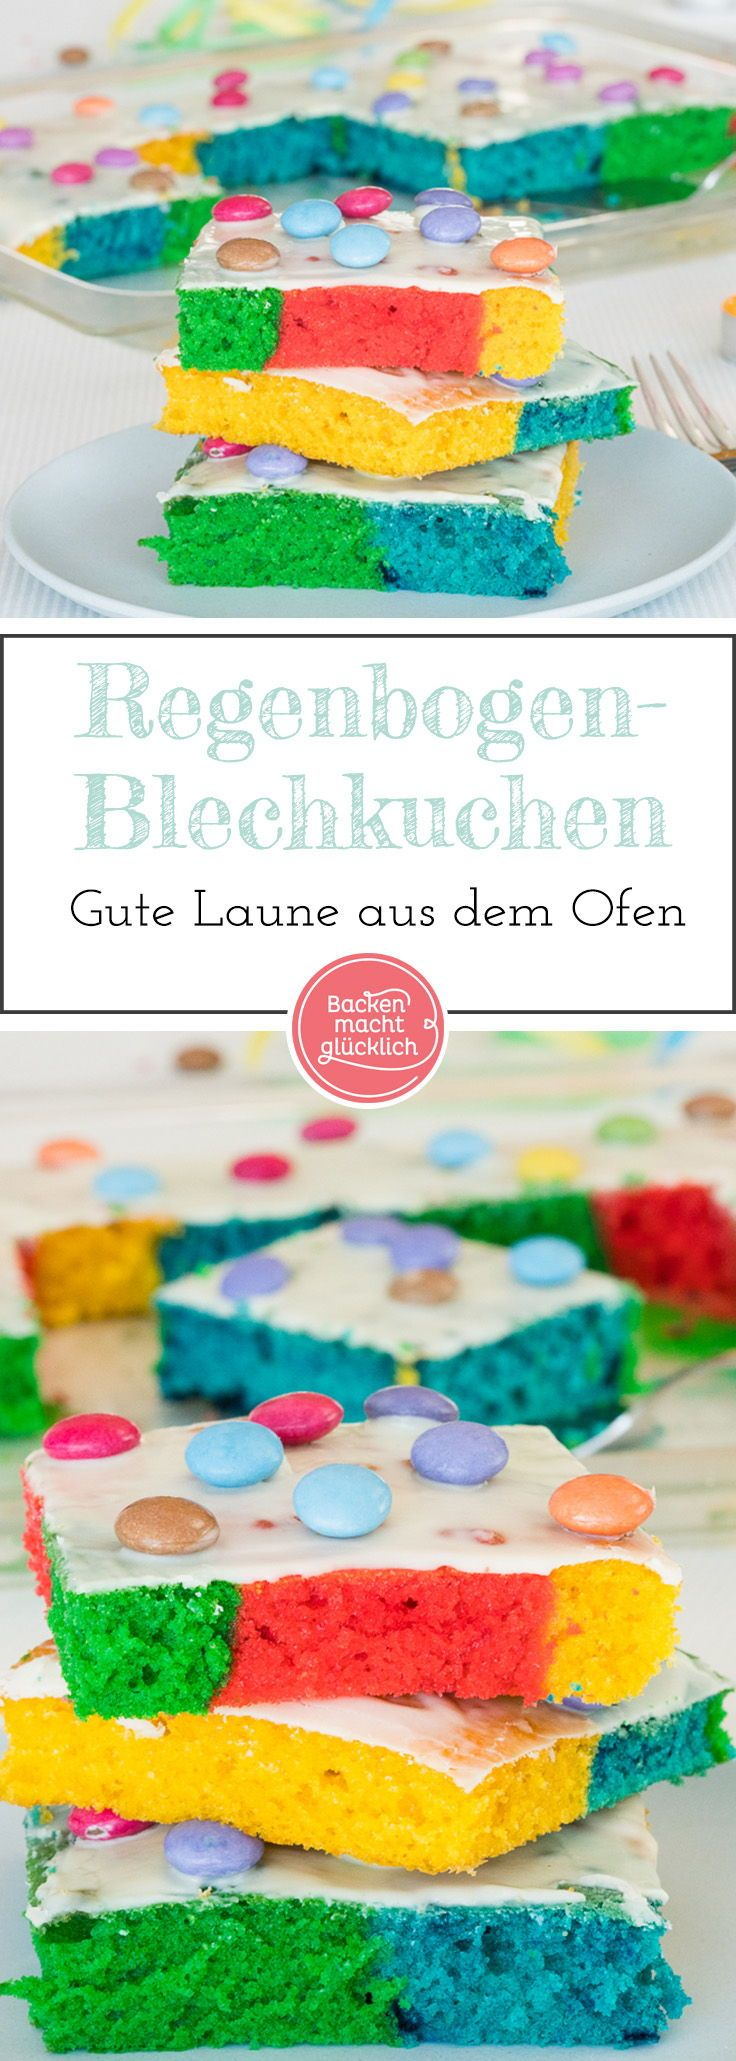 regenbogenkuchen vom blech rezept backen mit kindern rezepte pinterest kuchen backen. Black Bedroom Furniture Sets. Home Design Ideas